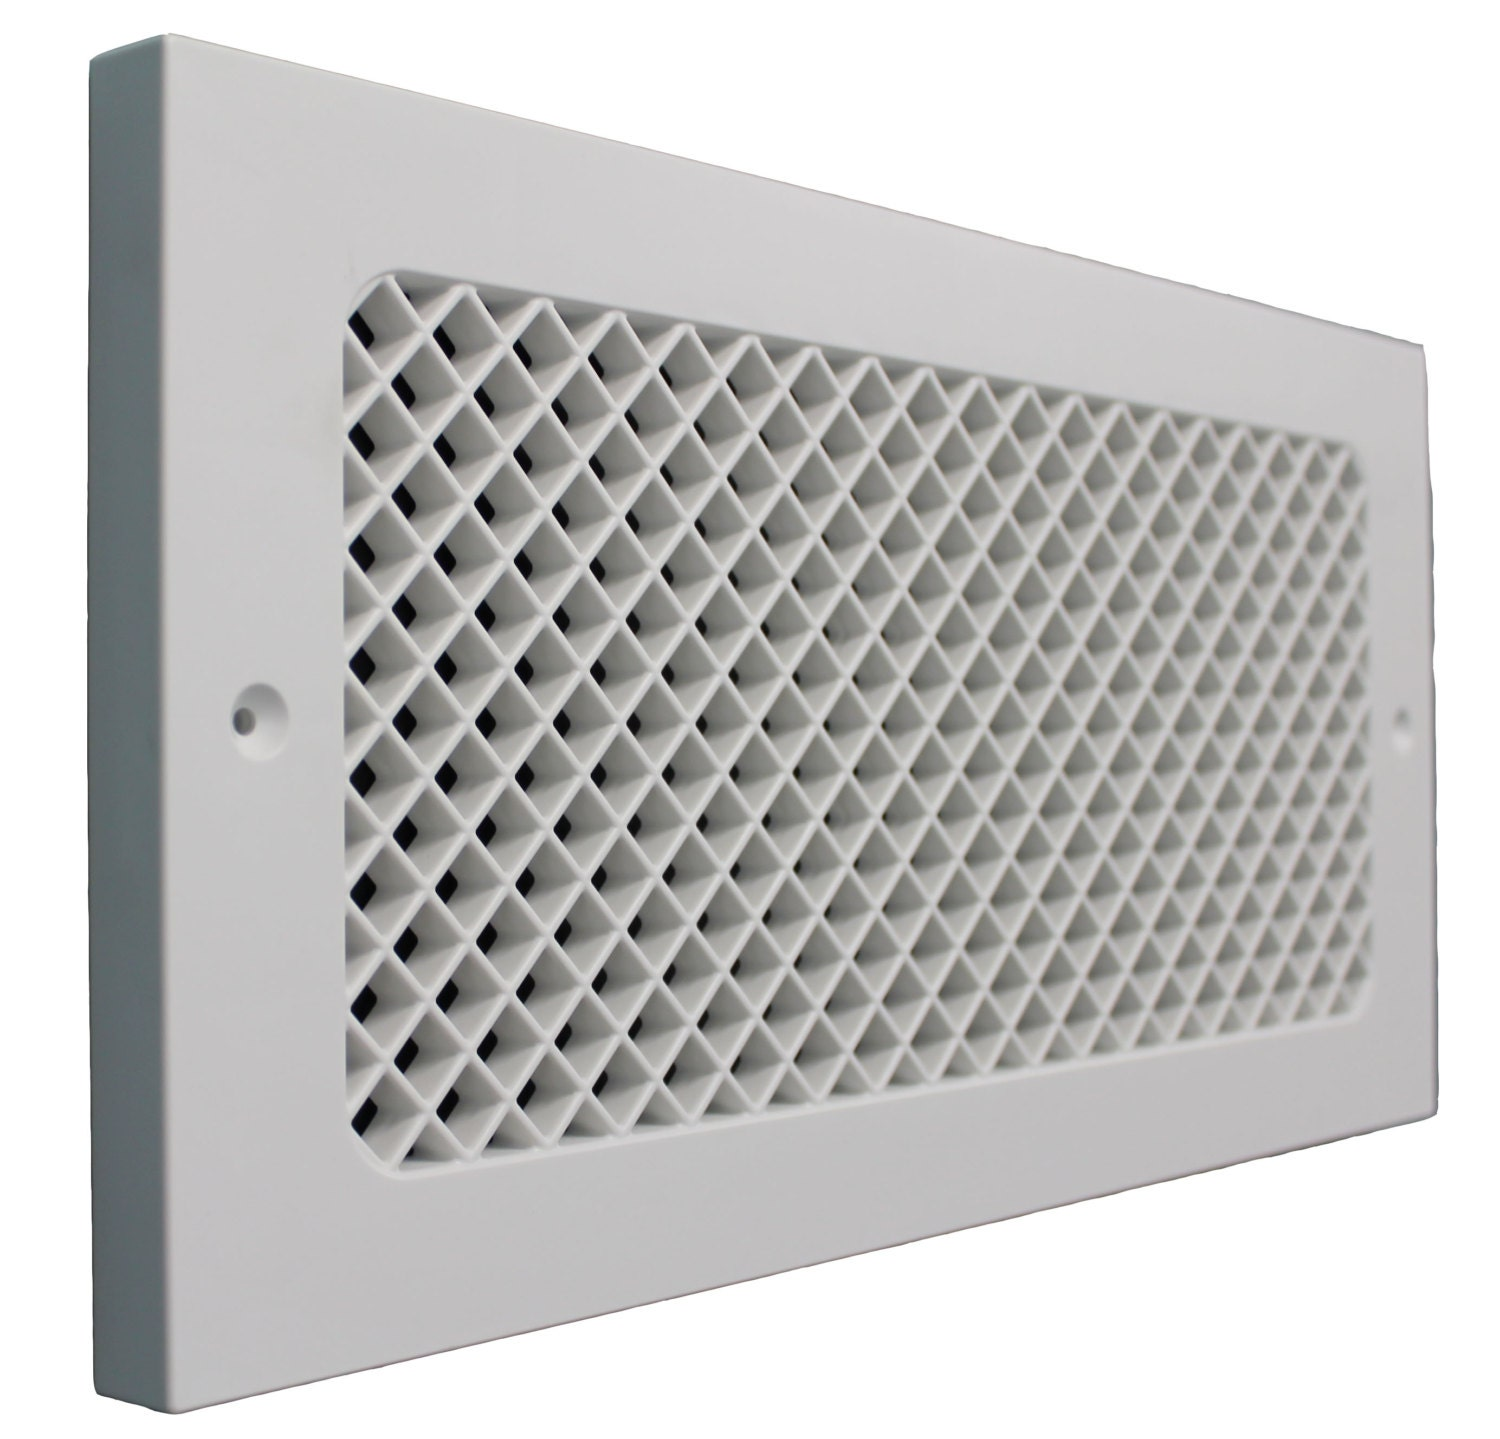 Air Ventilator Board : Essex base board grille vent